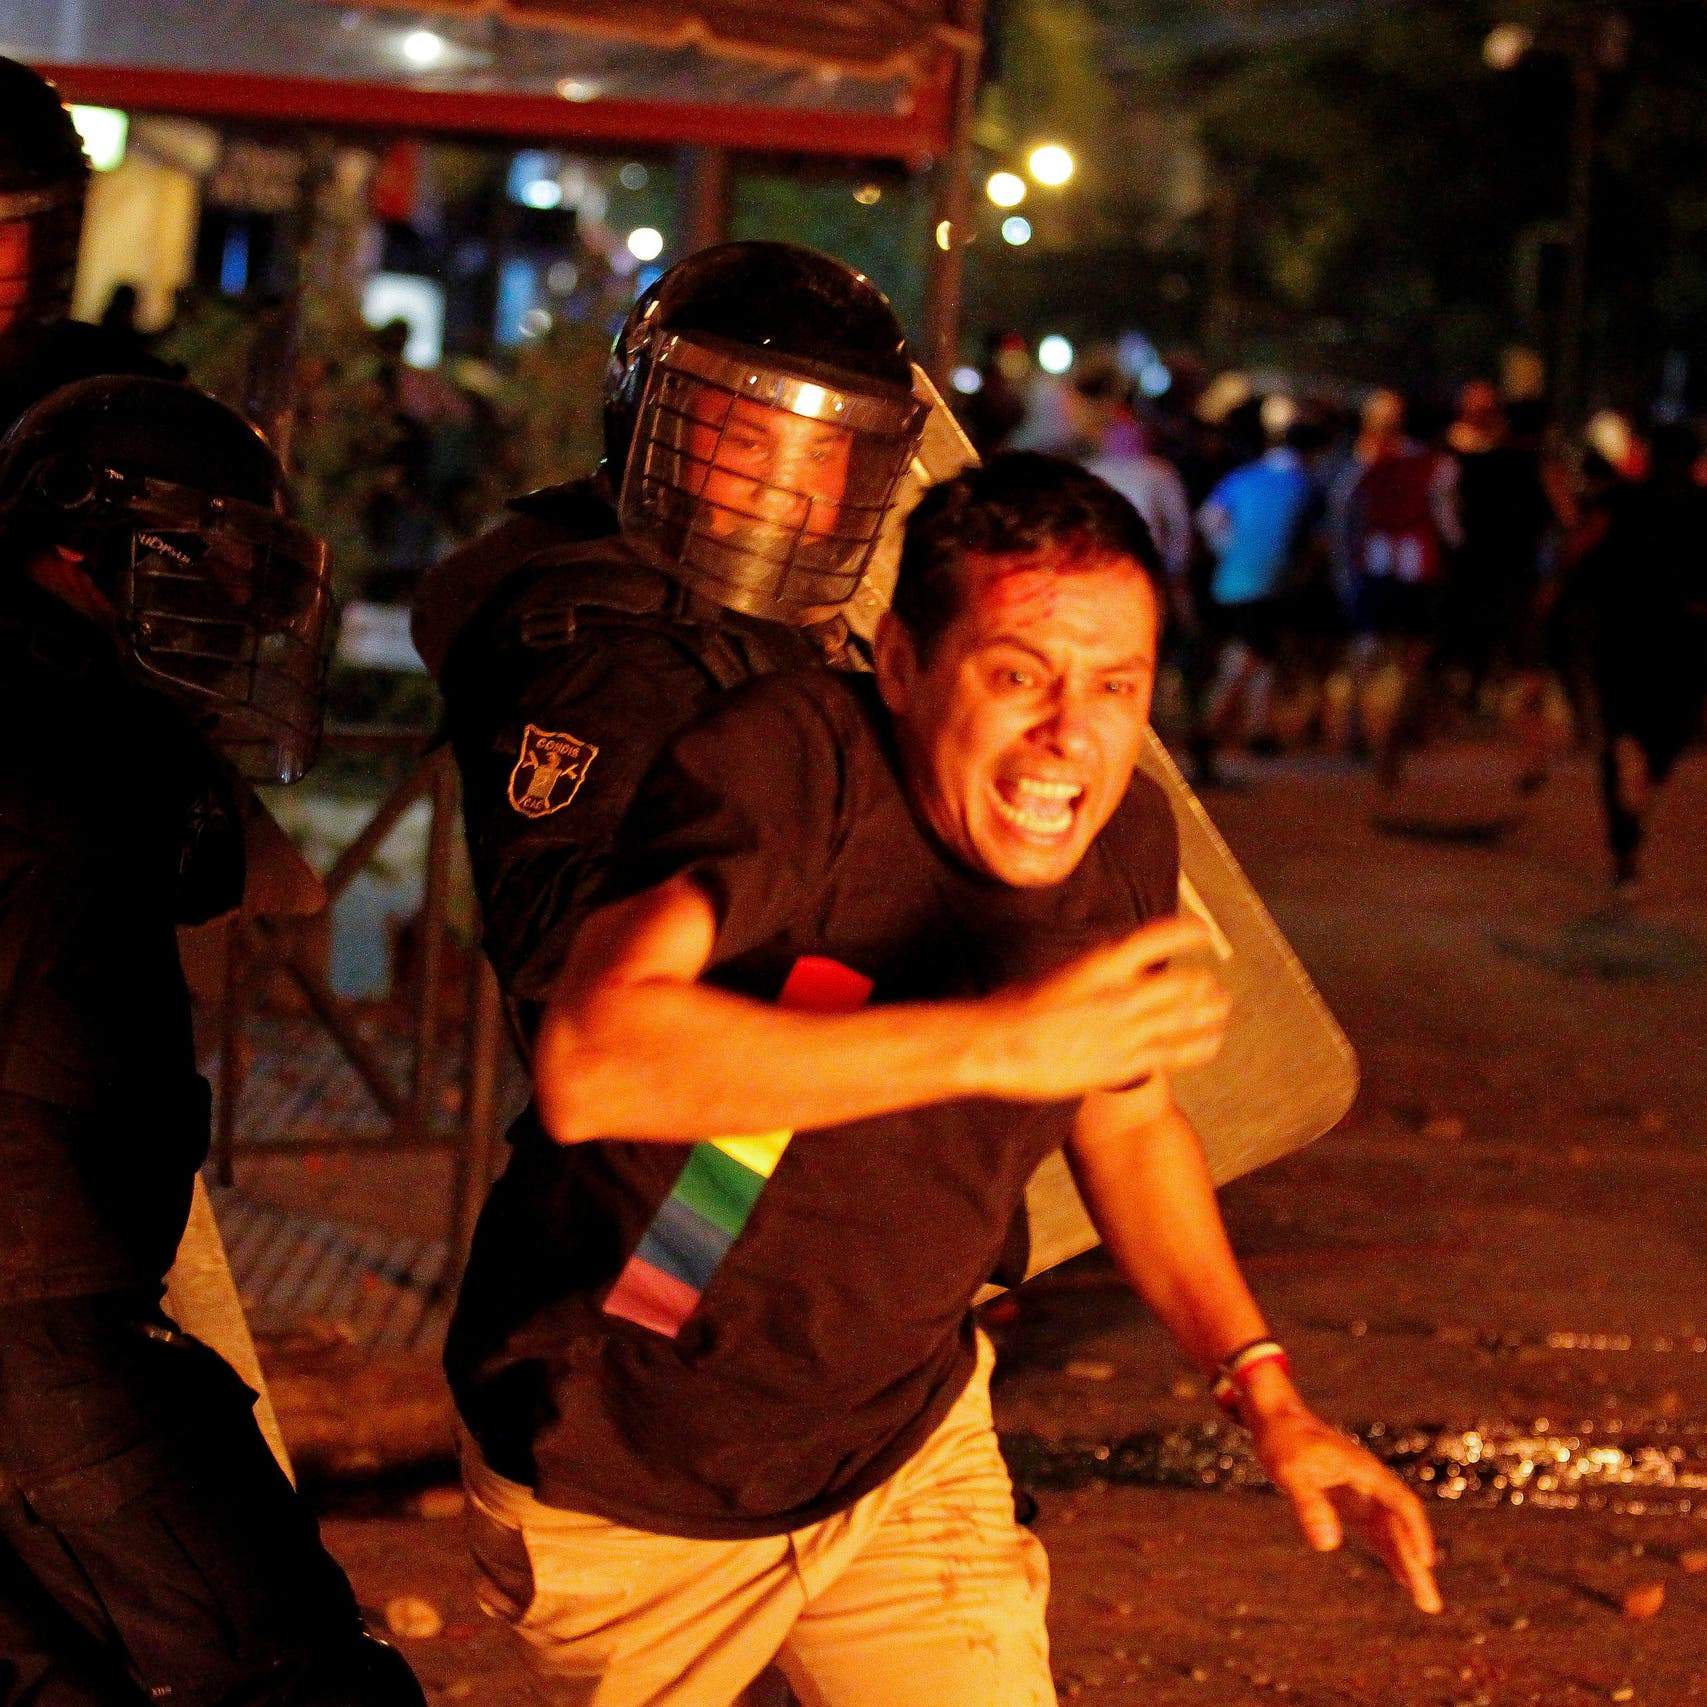 Paraguay protesters clash with police over government handling of COVID-19